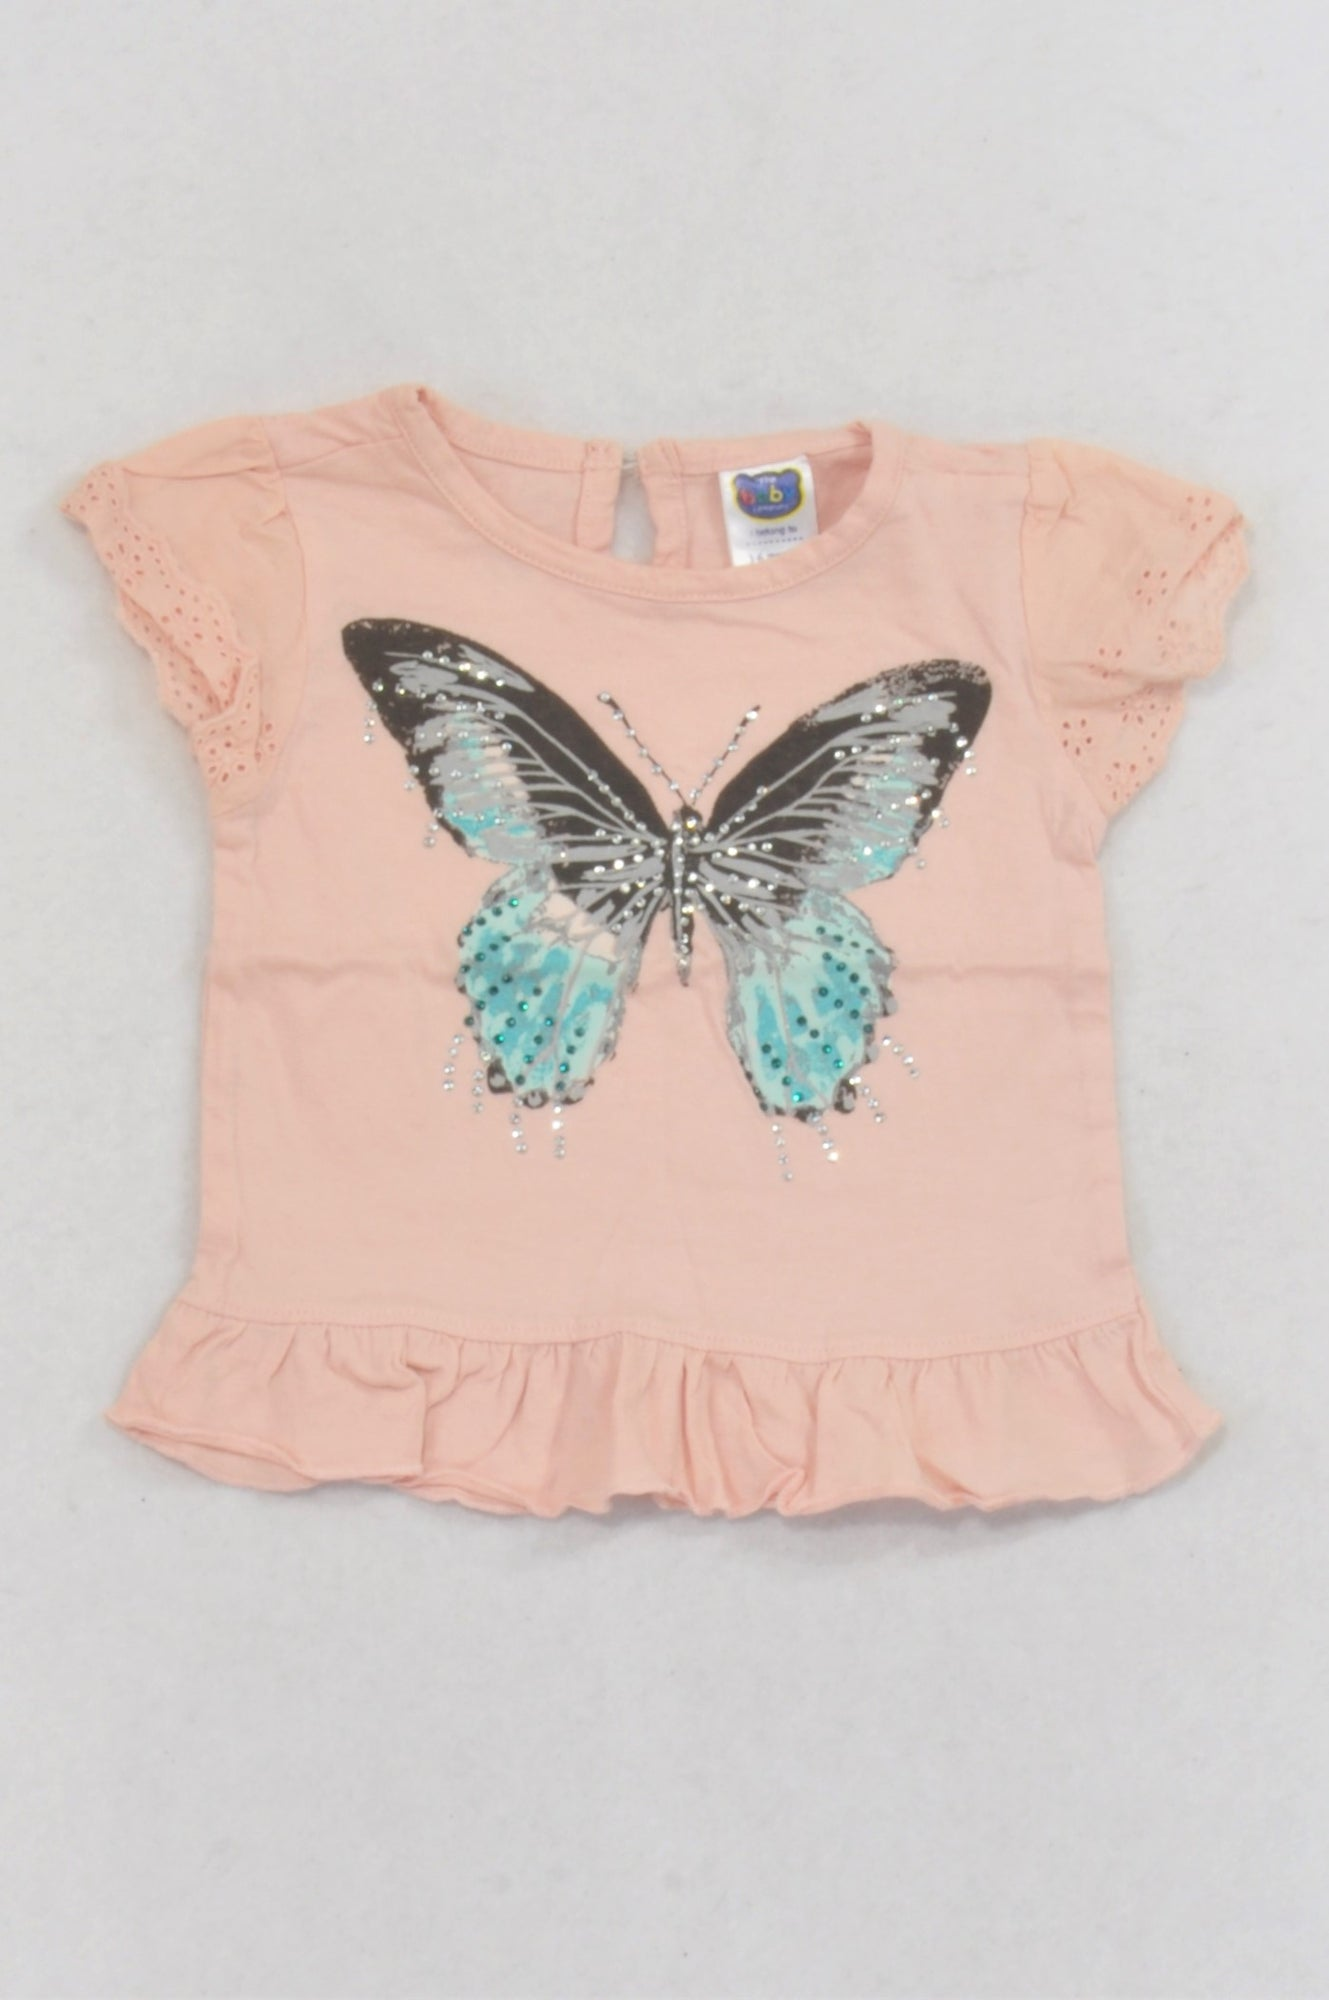 Ackermans Pink Butterfly Drill Rhinestone T-shirt Girls 3-6 months